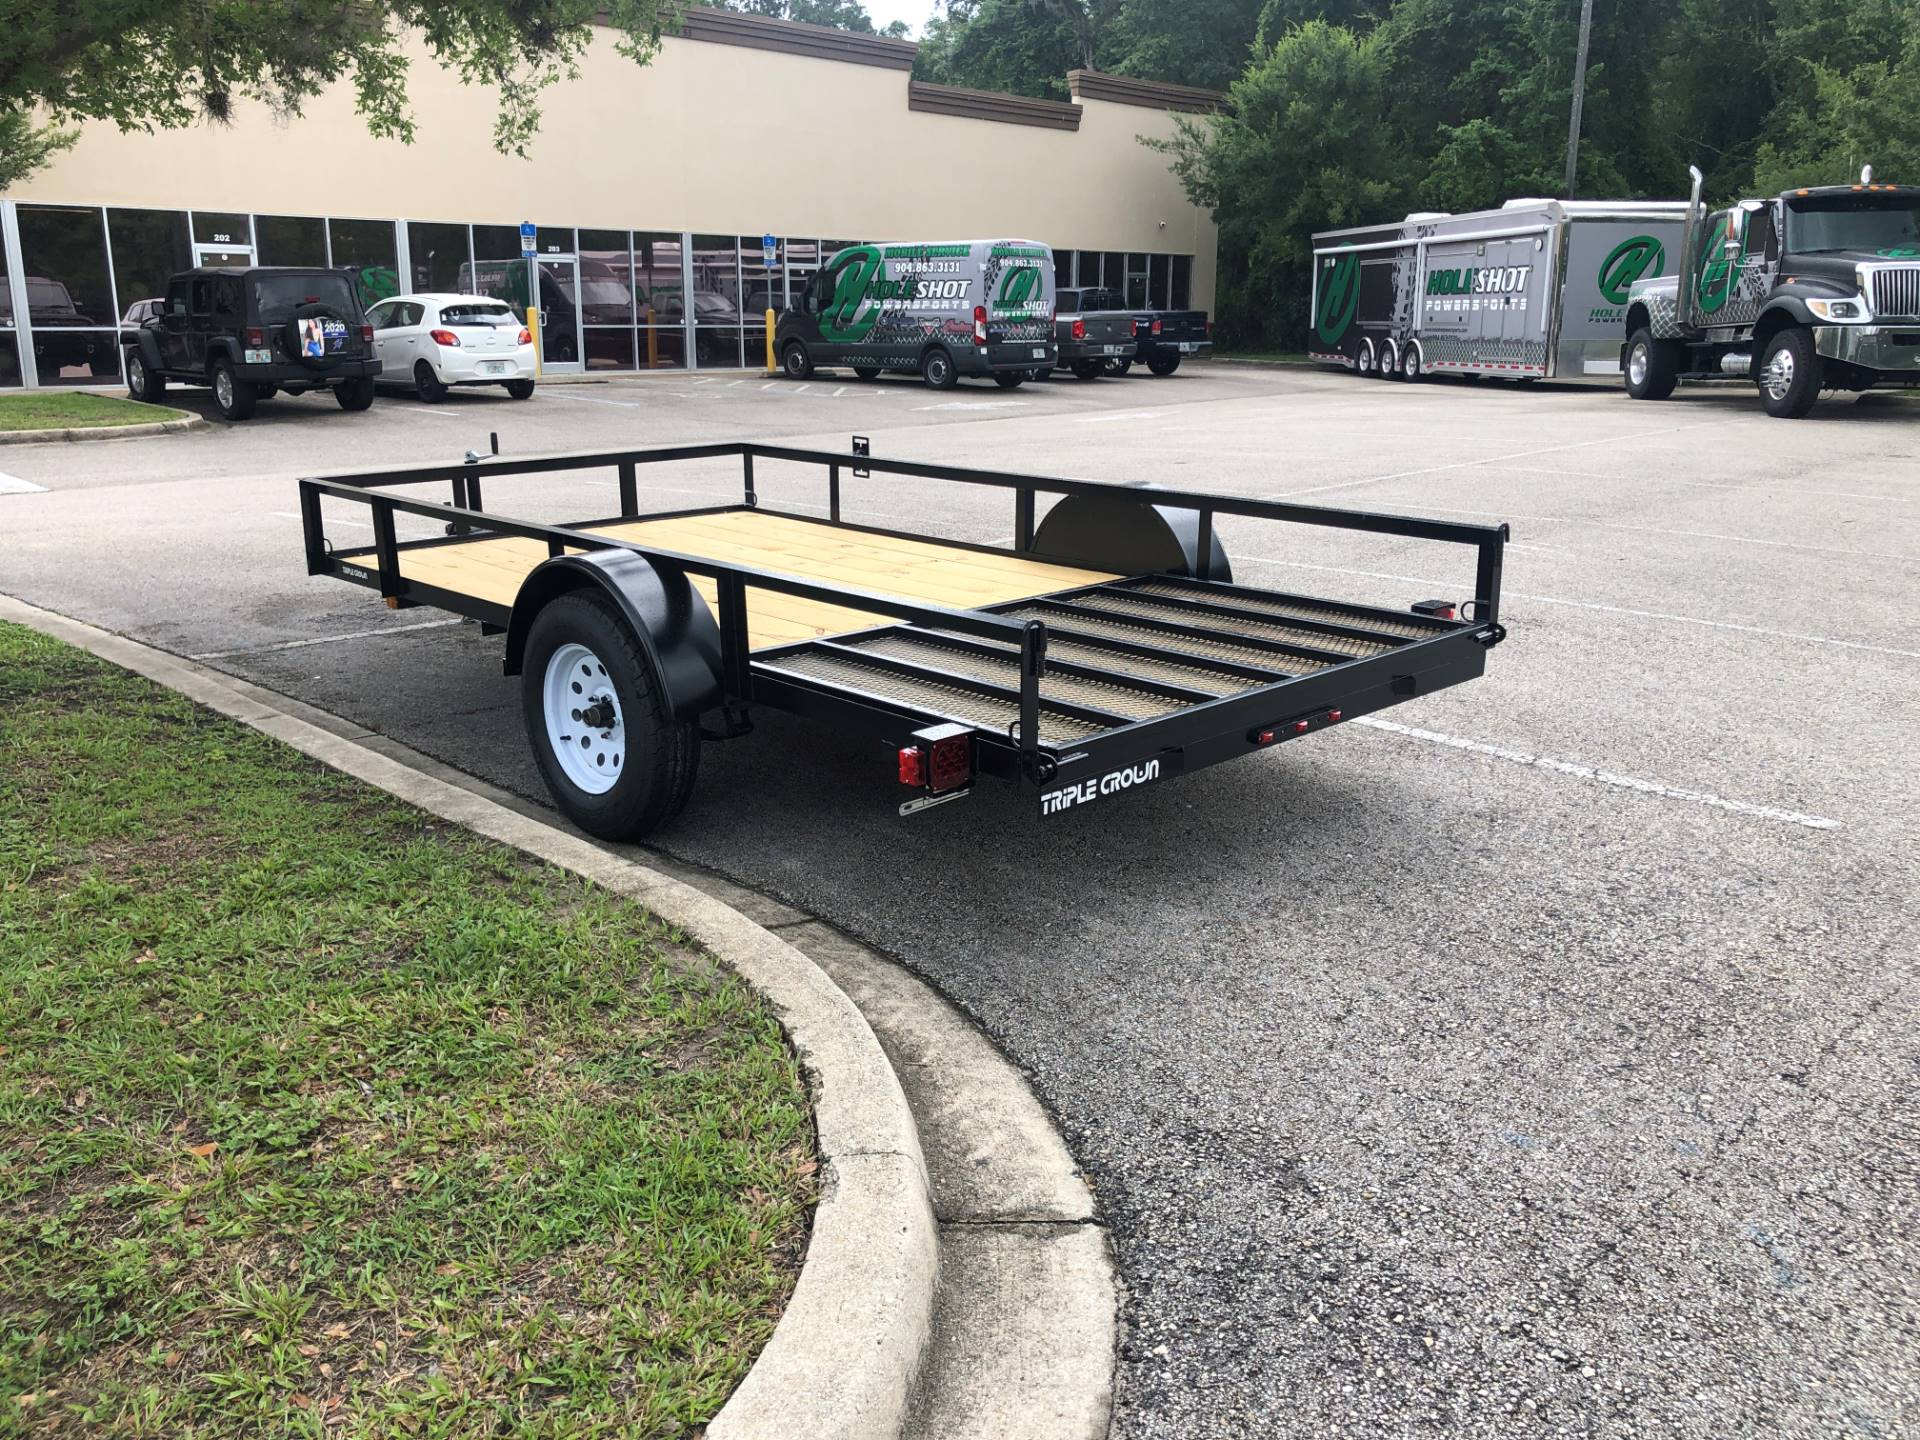 2020 TRIPLE CROWN TRAILERS 6X12 UTILITY in Fleming Island, Florida - Photo 4